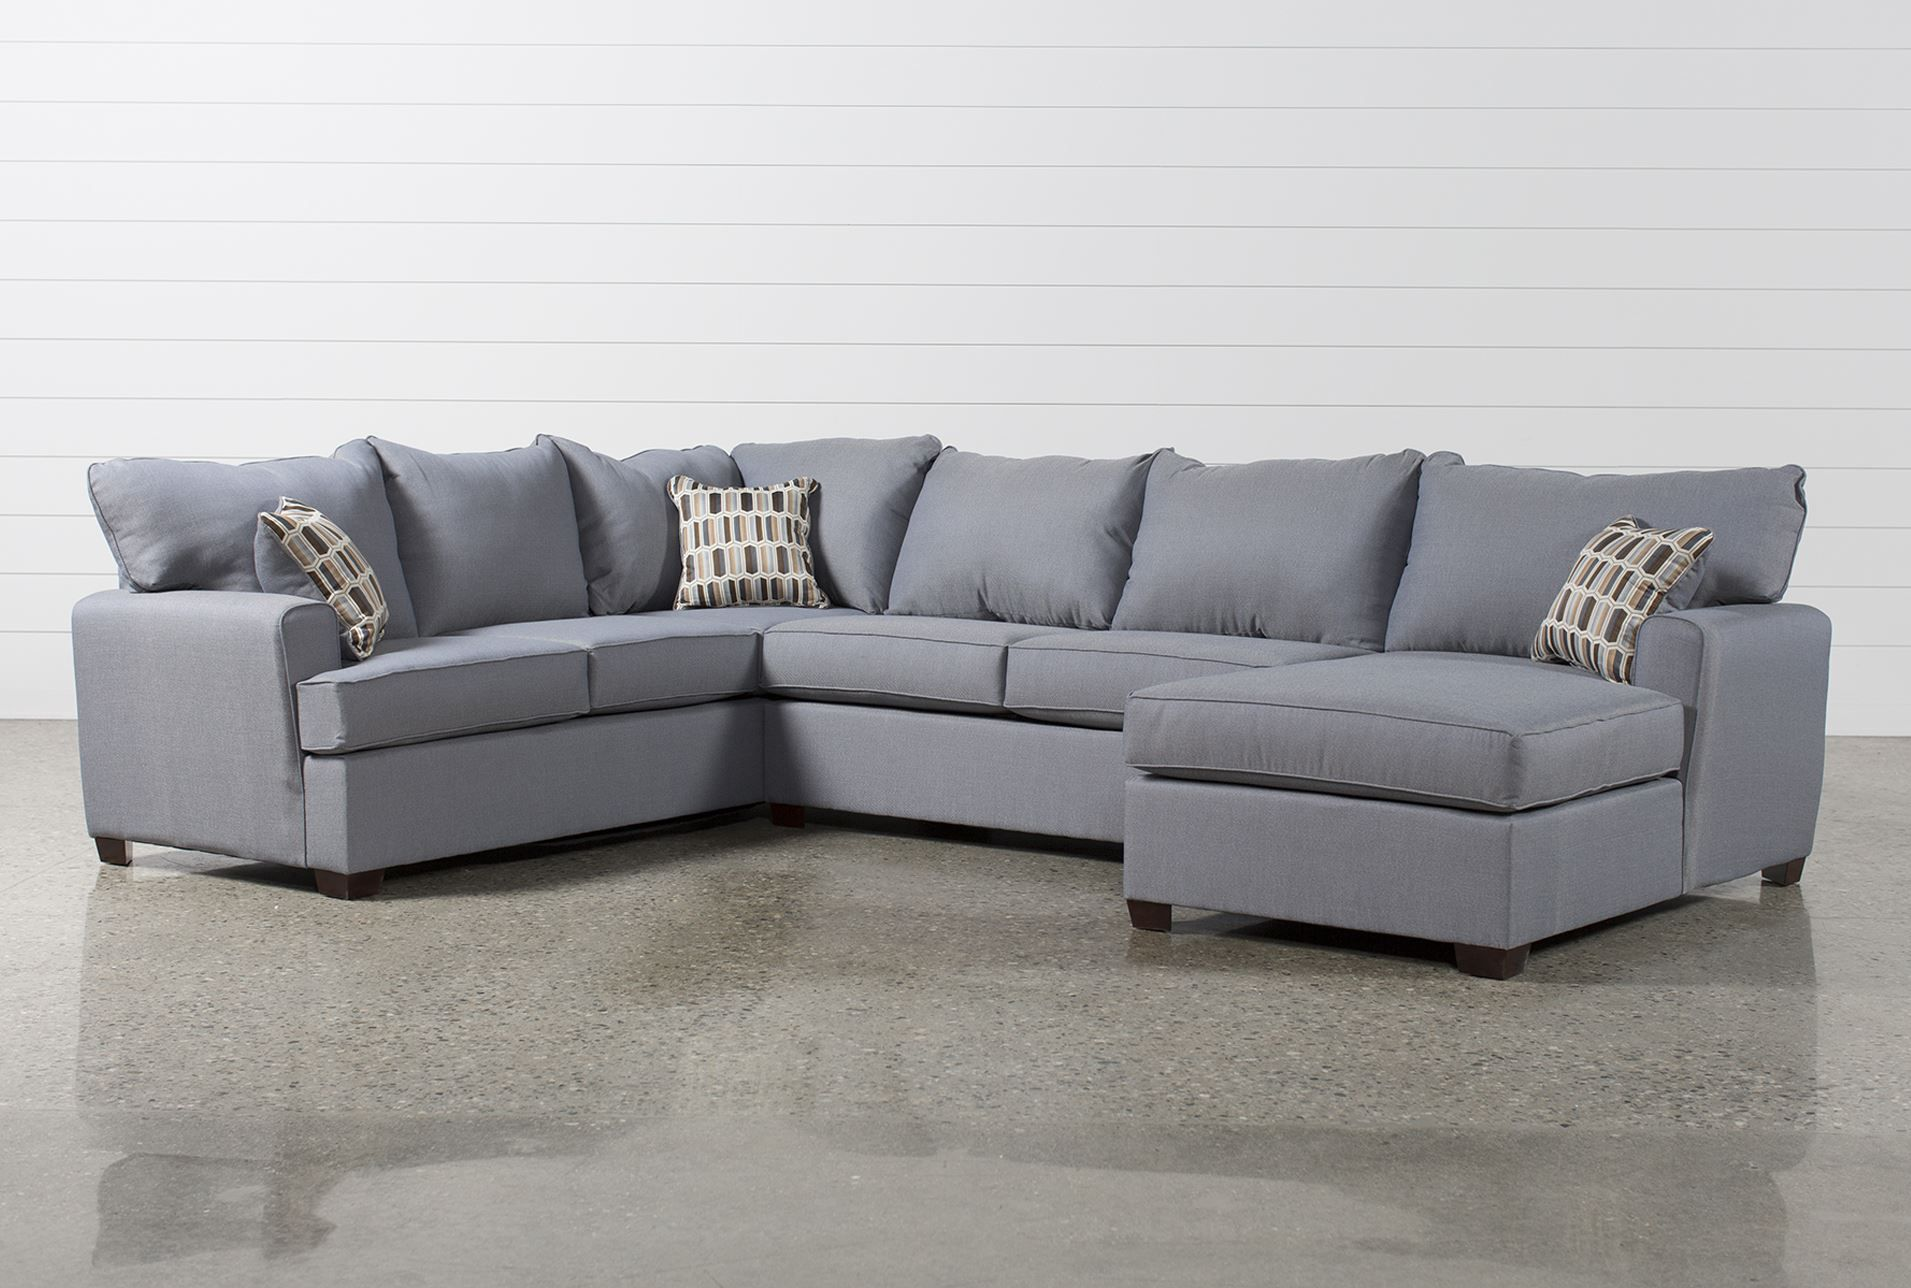 Best Bingham 3 Piece Sectional W Raf Chaise Signature Sofas 400 x 300